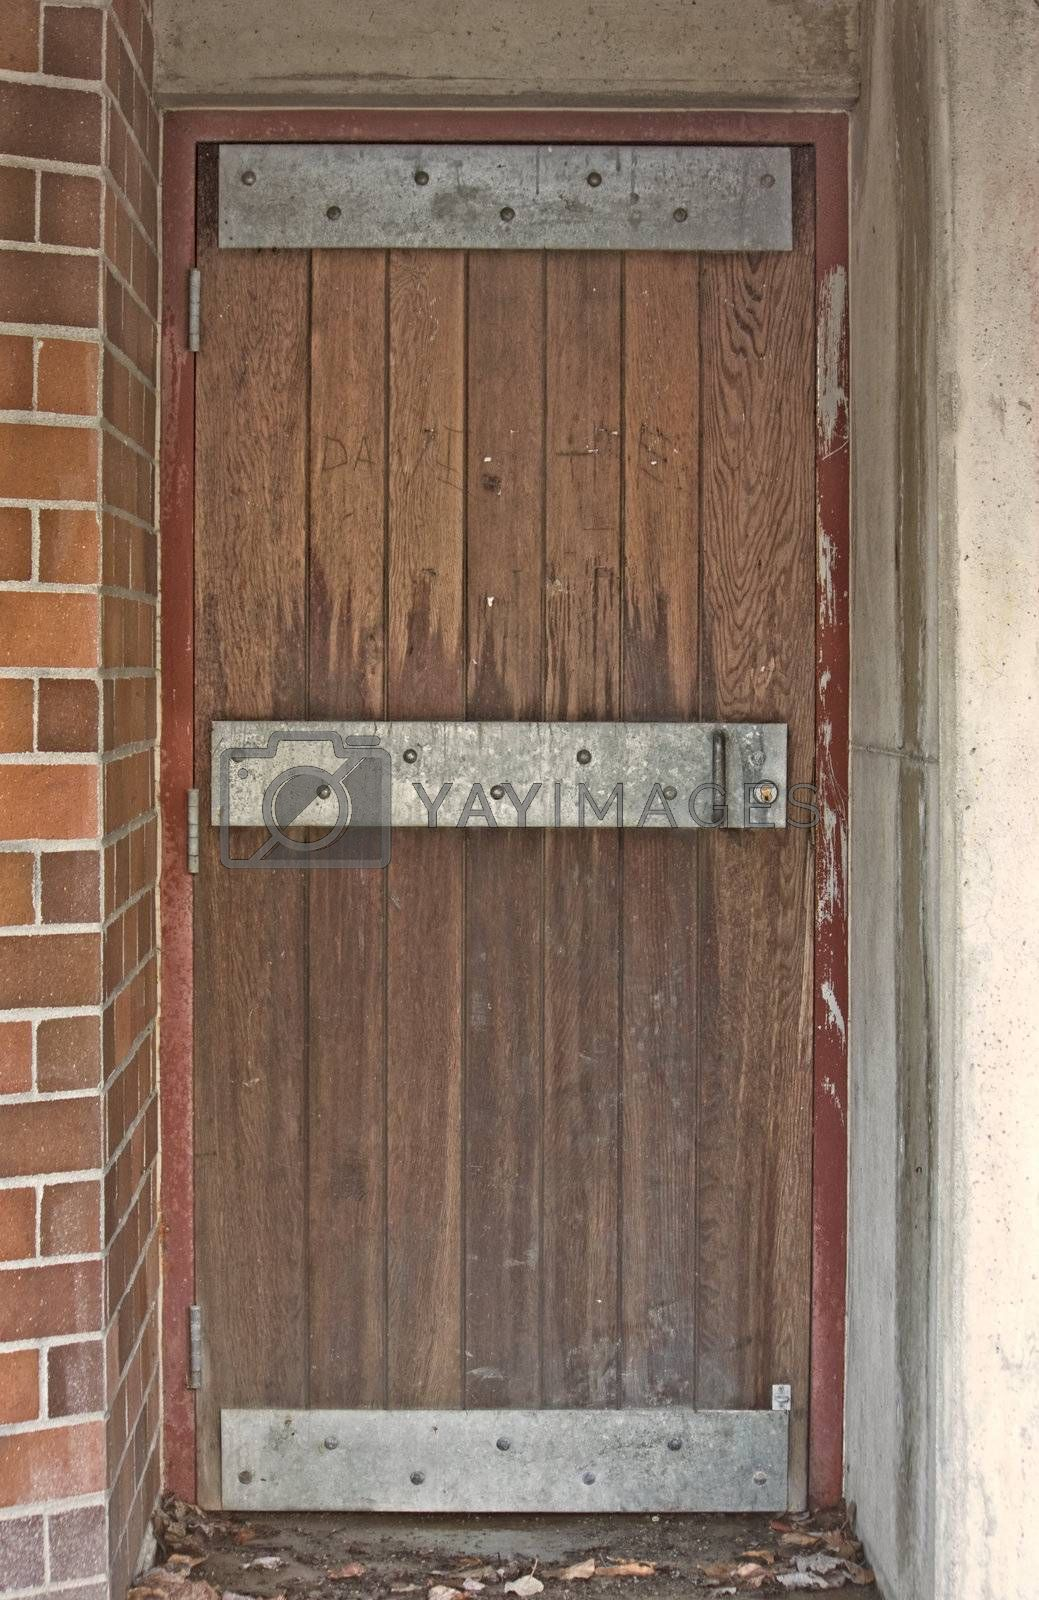 Old Looking Steel Reinforced Door with Wood Boards and Red Brick Wall with mortar.